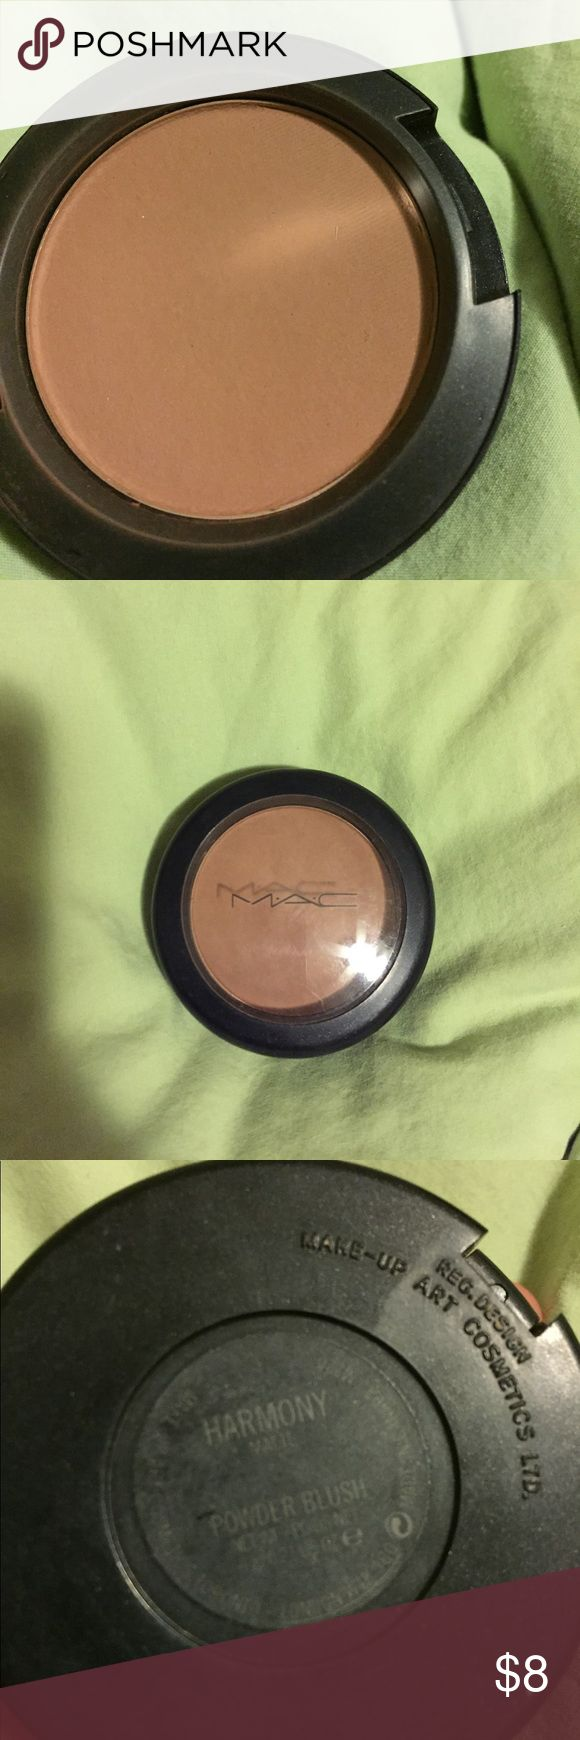 MAC harmony blush Used a handful of times. Purchased at Dillard's. Do not have box MAC Cosmetics Makeup Blush